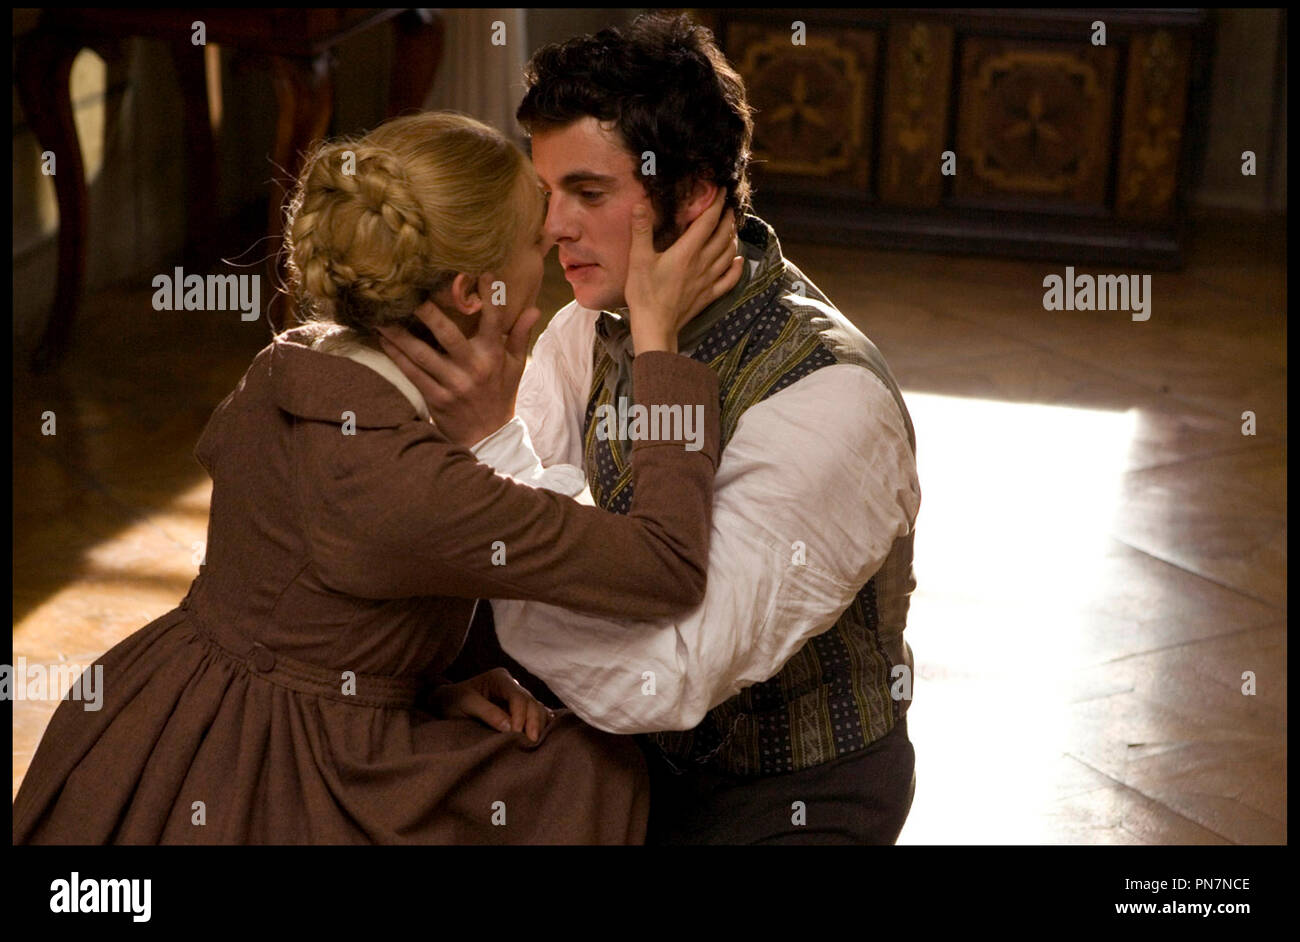 Prod DB © Myriad Pictures - VIP Medienfonds 2 - MGM / DR L'ELEVE DE BEETHOVEN (COPYING BEETHOVEN) de Agnieszka Holland 2006 ALL./USA/HONG. avec Diane Kruger et Matthew Goode biographie, biopic, XIXeme siecle Stock Photo